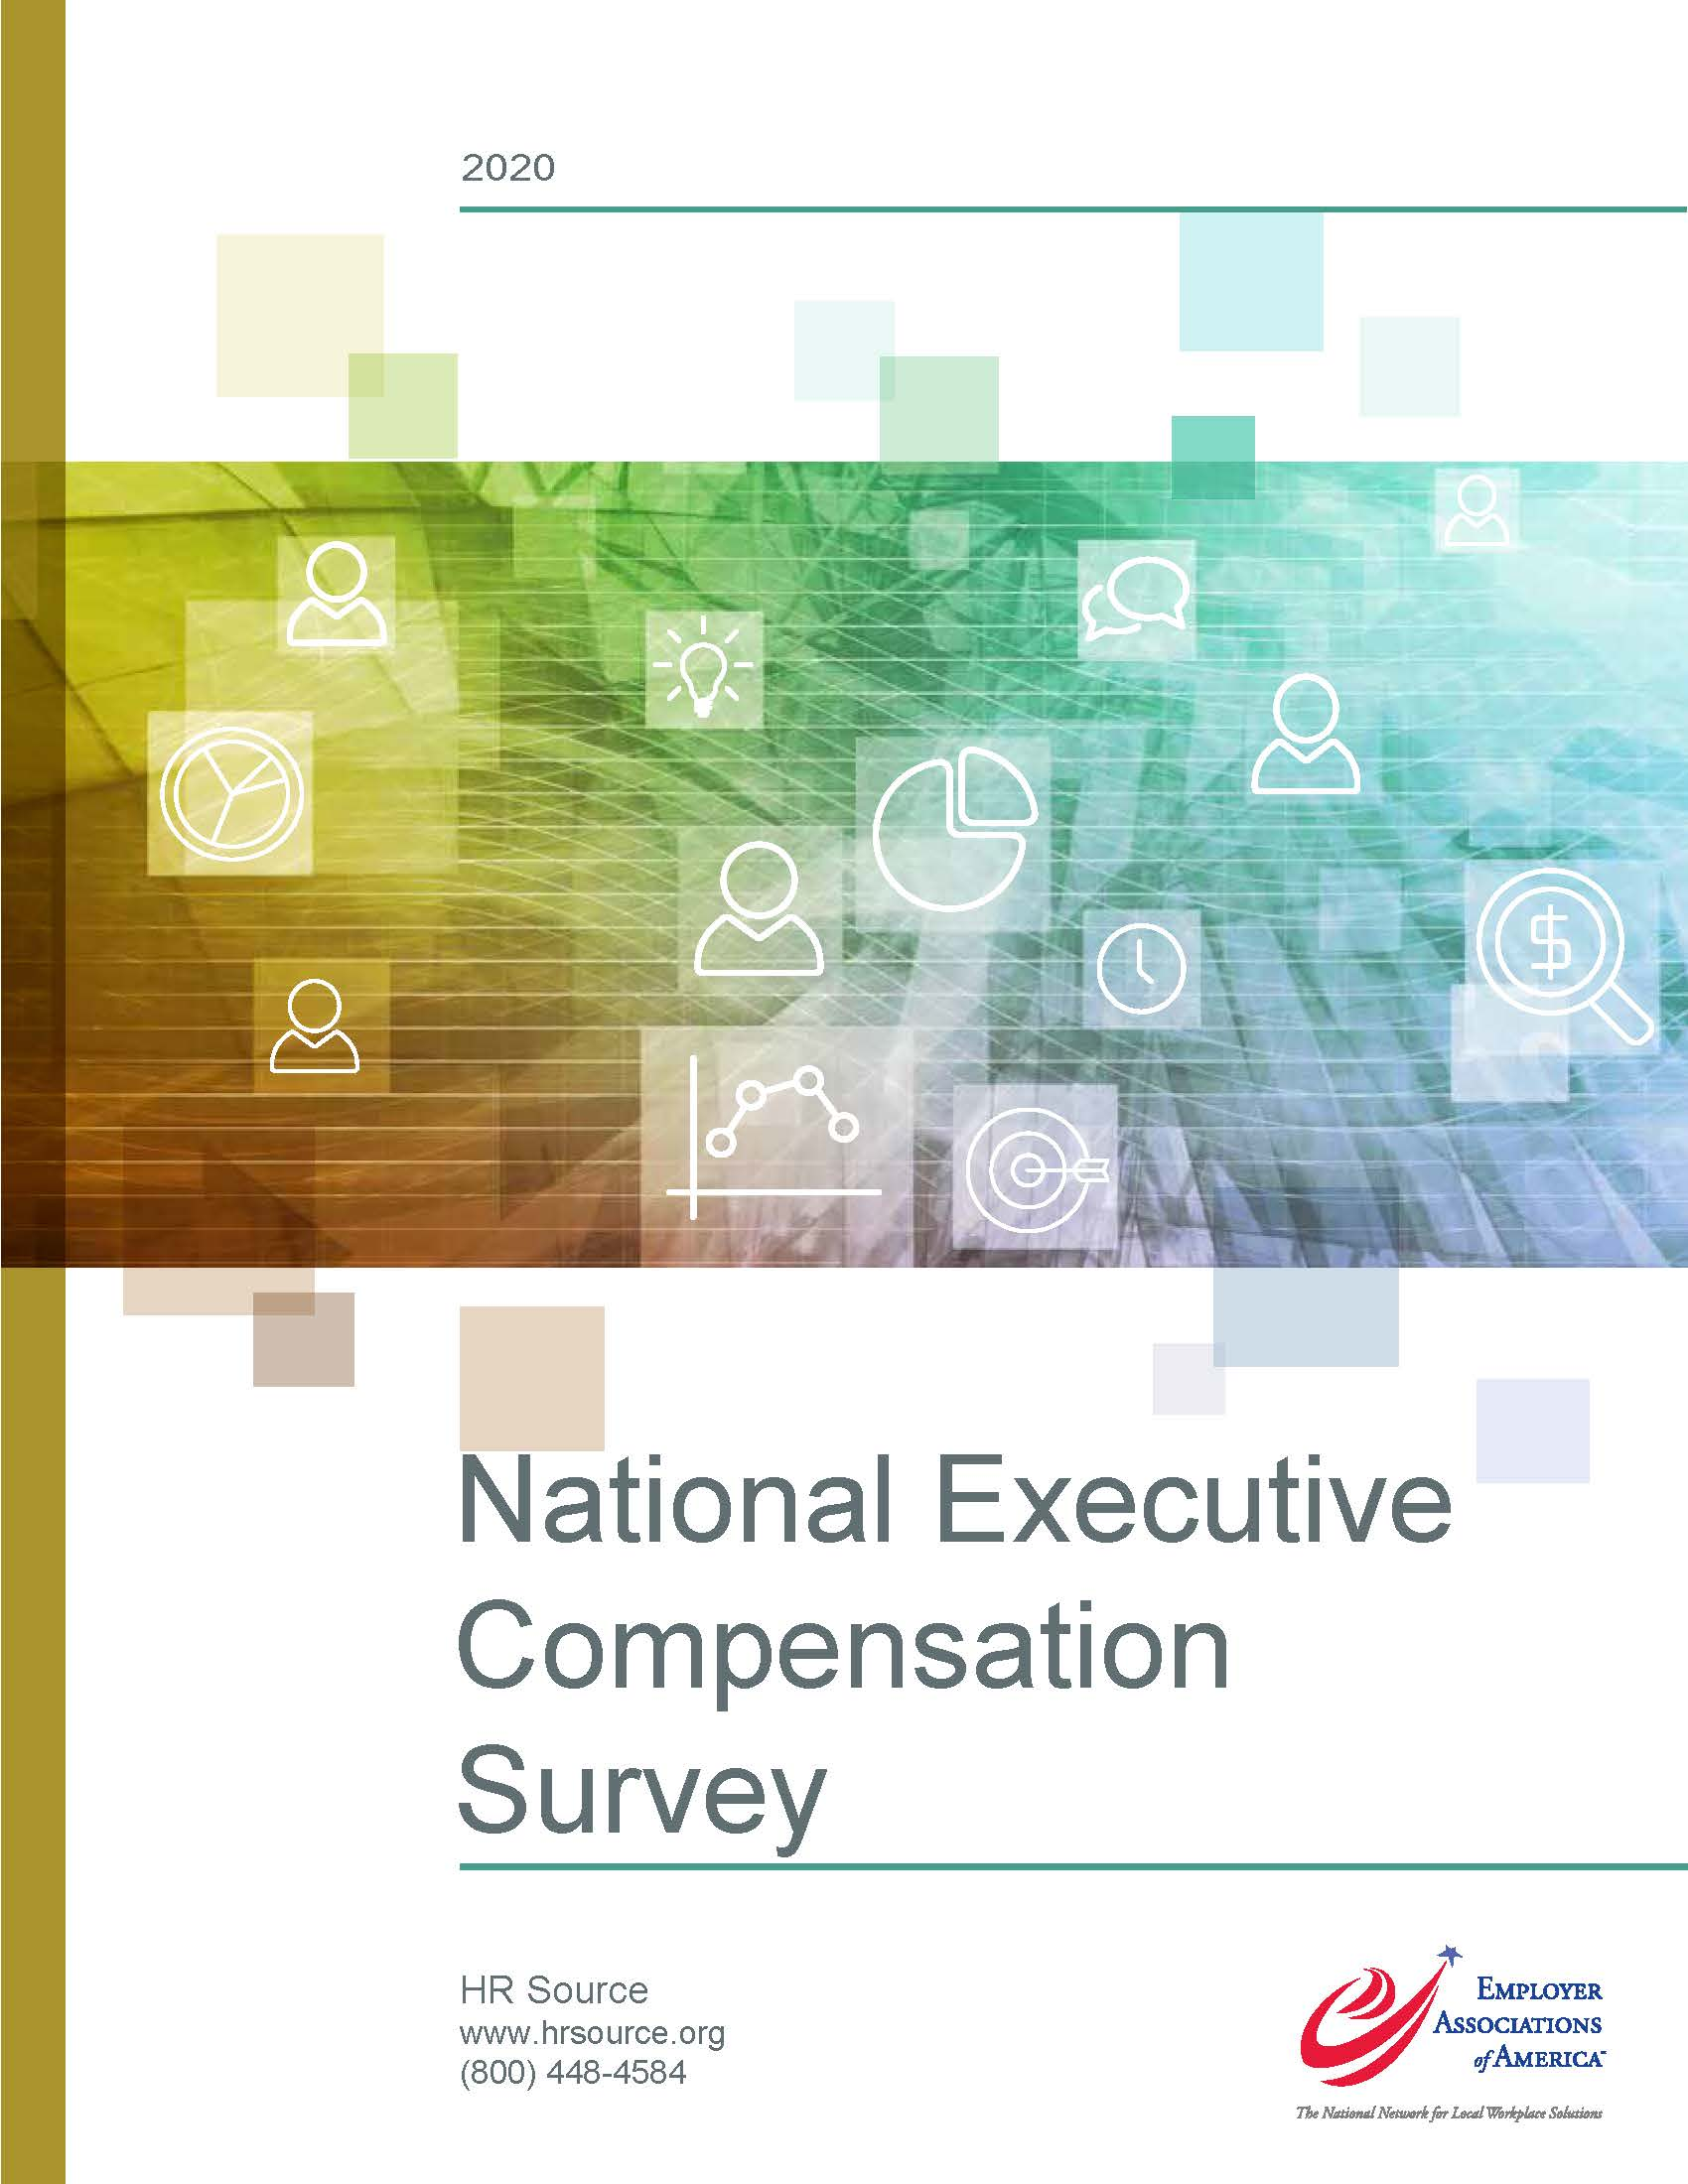 National Executive Compensation Survey 2020